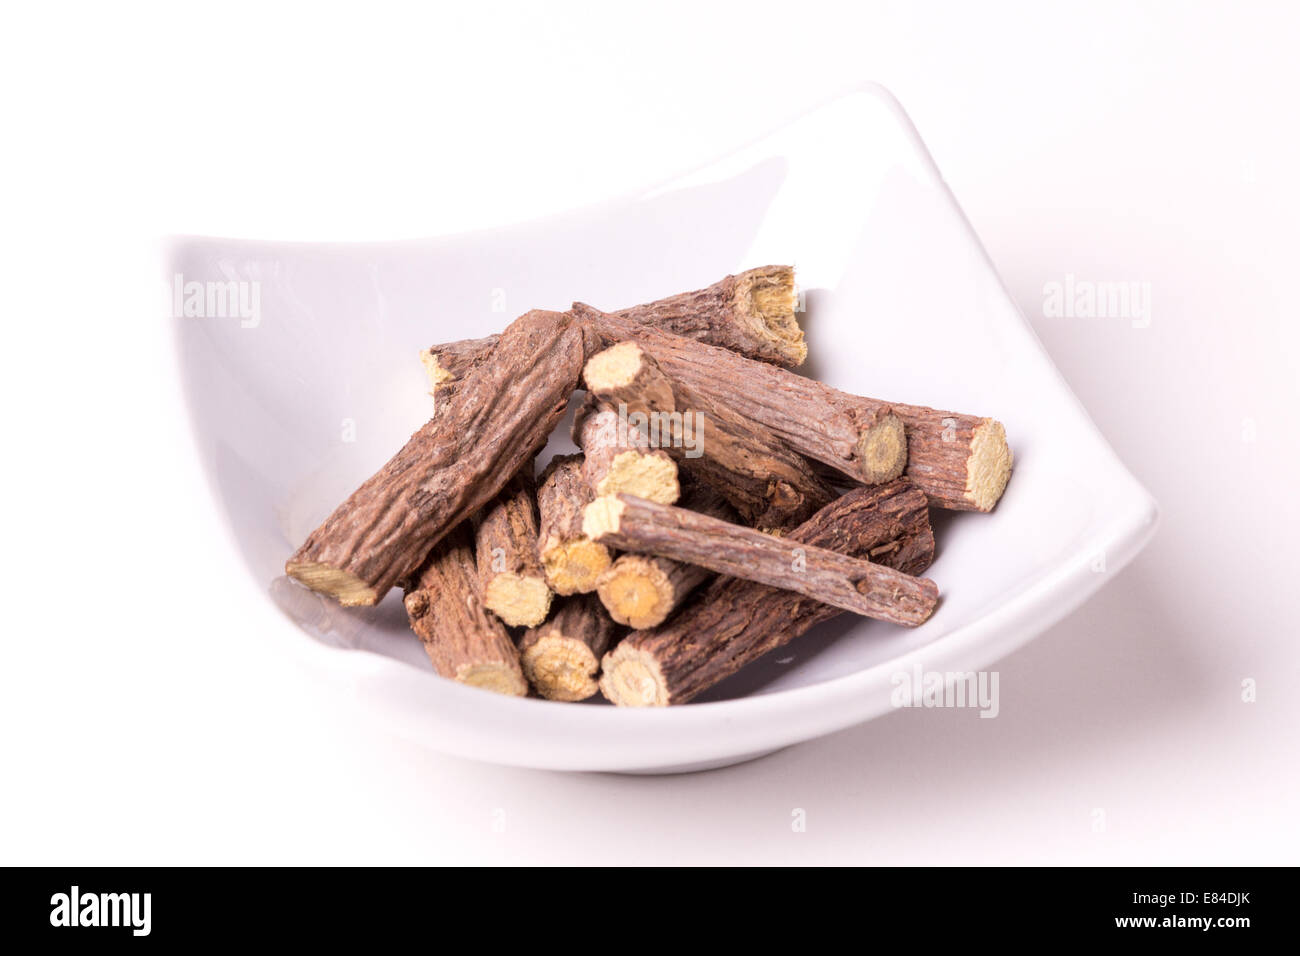 Liquorice root on a white background, studio isolated - Stock Image